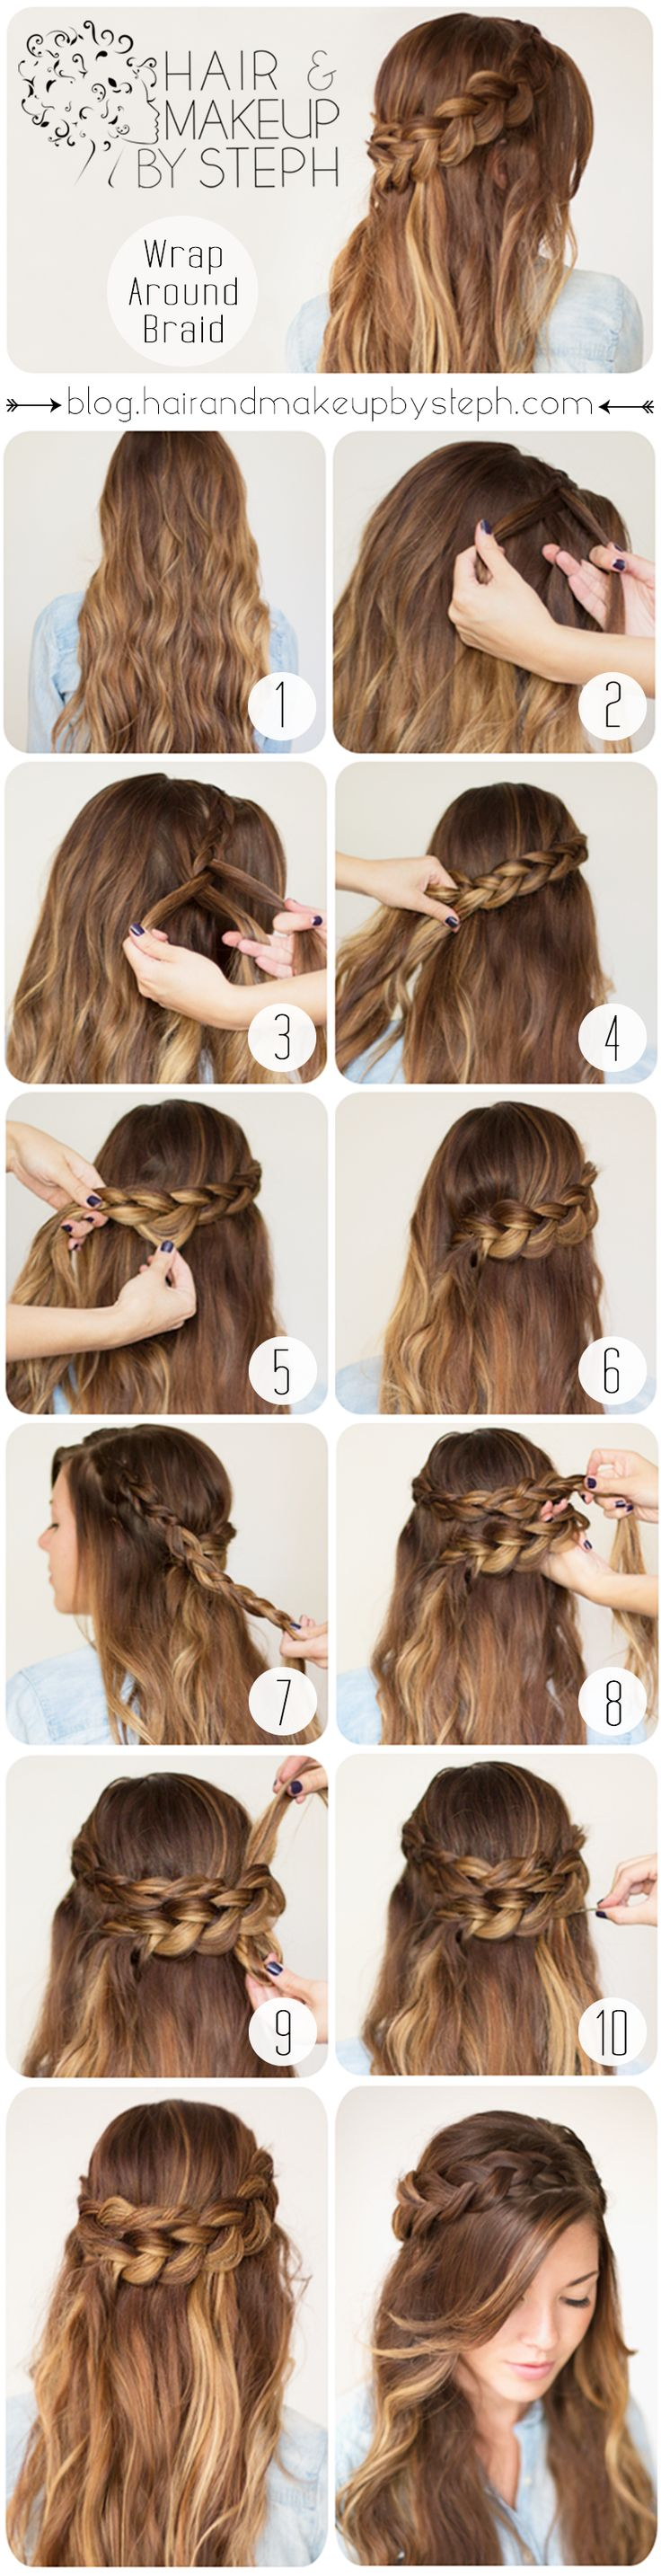 How To:  Wrap Around Braid So elegant and classy, you can dress up or down with this<3